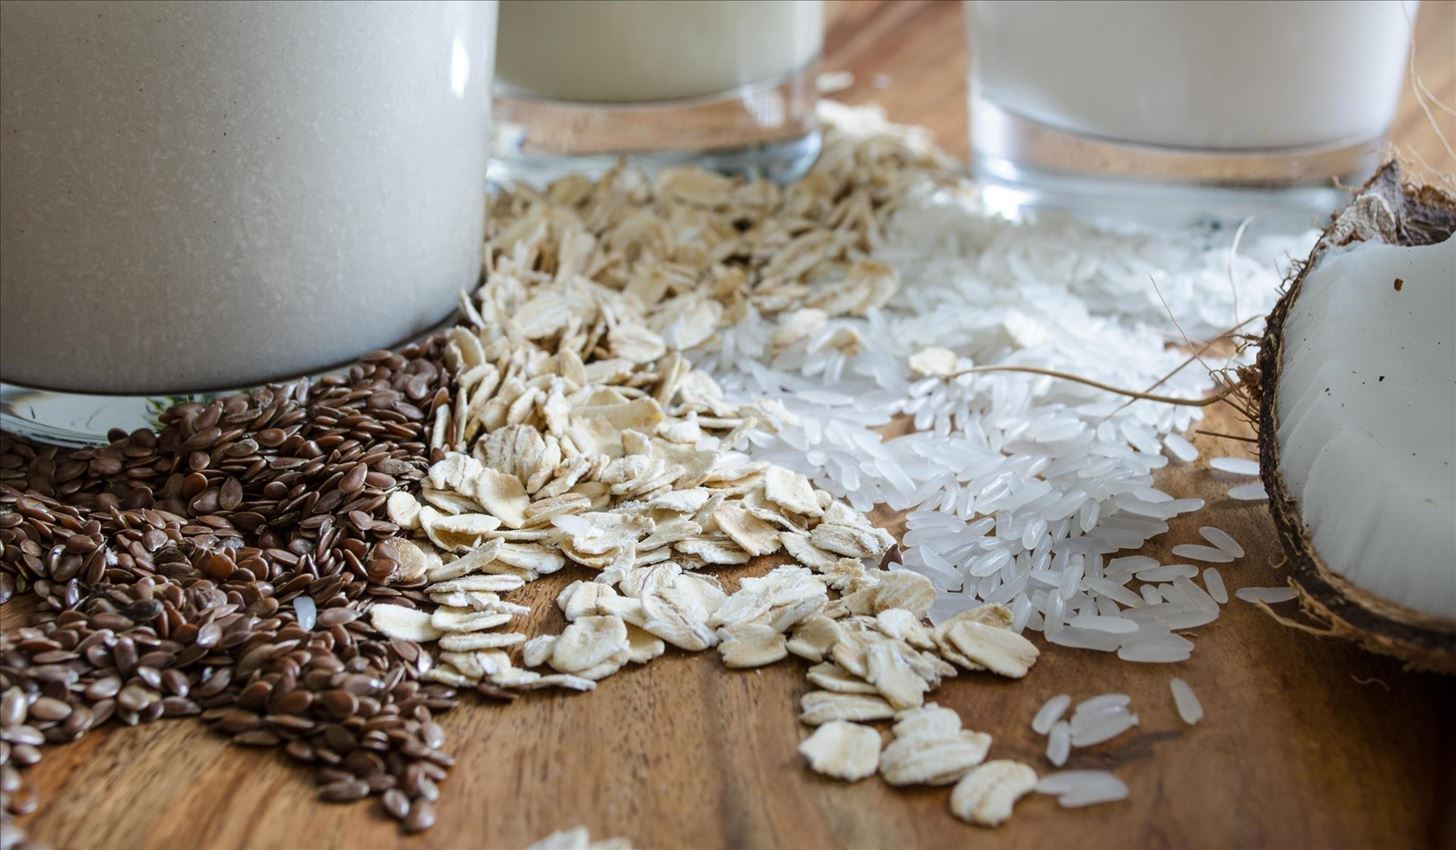 When You're Sick of Almond & Soy, Try These 5 Milk Alternatives